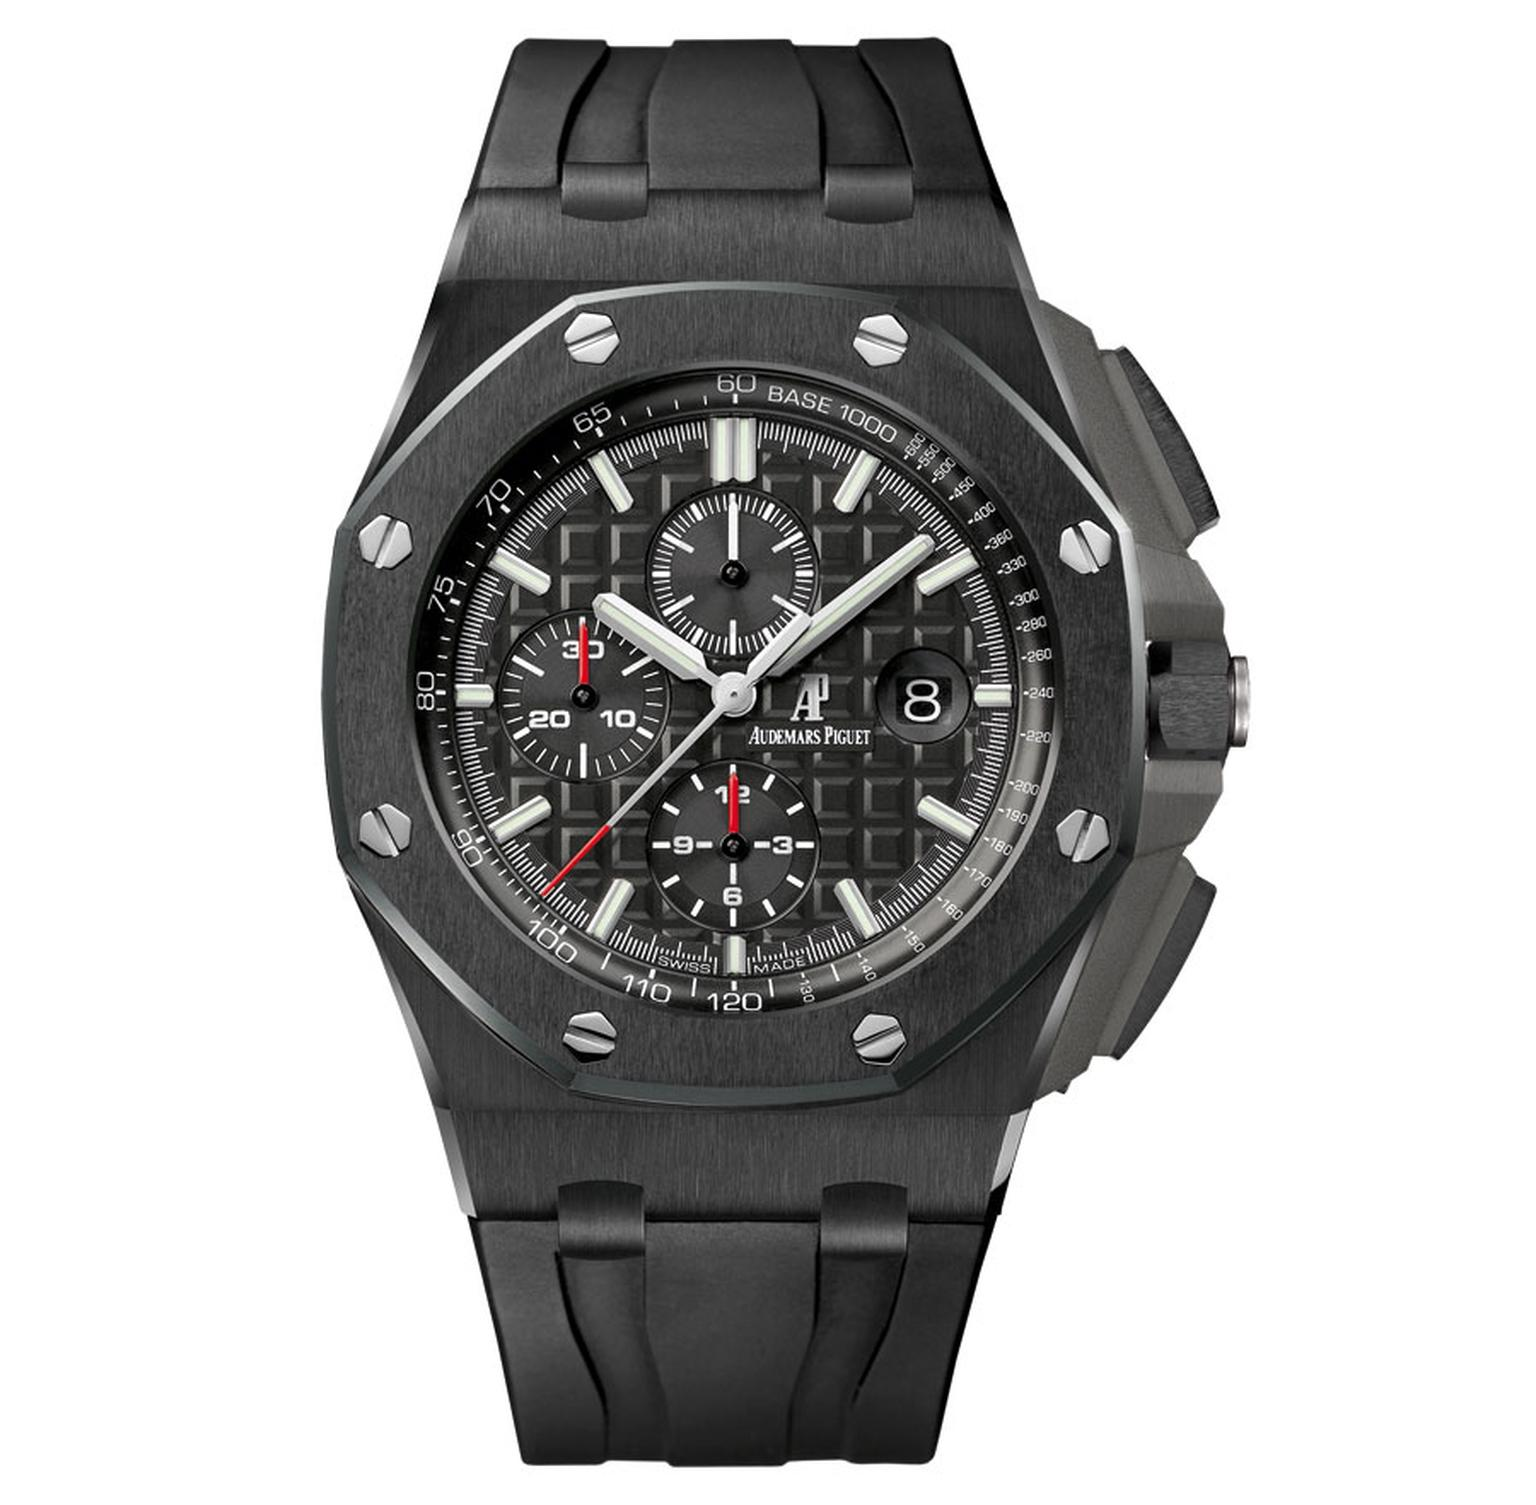 Audemars-Piguet-Royal-Oak-Offshore-Chronograph